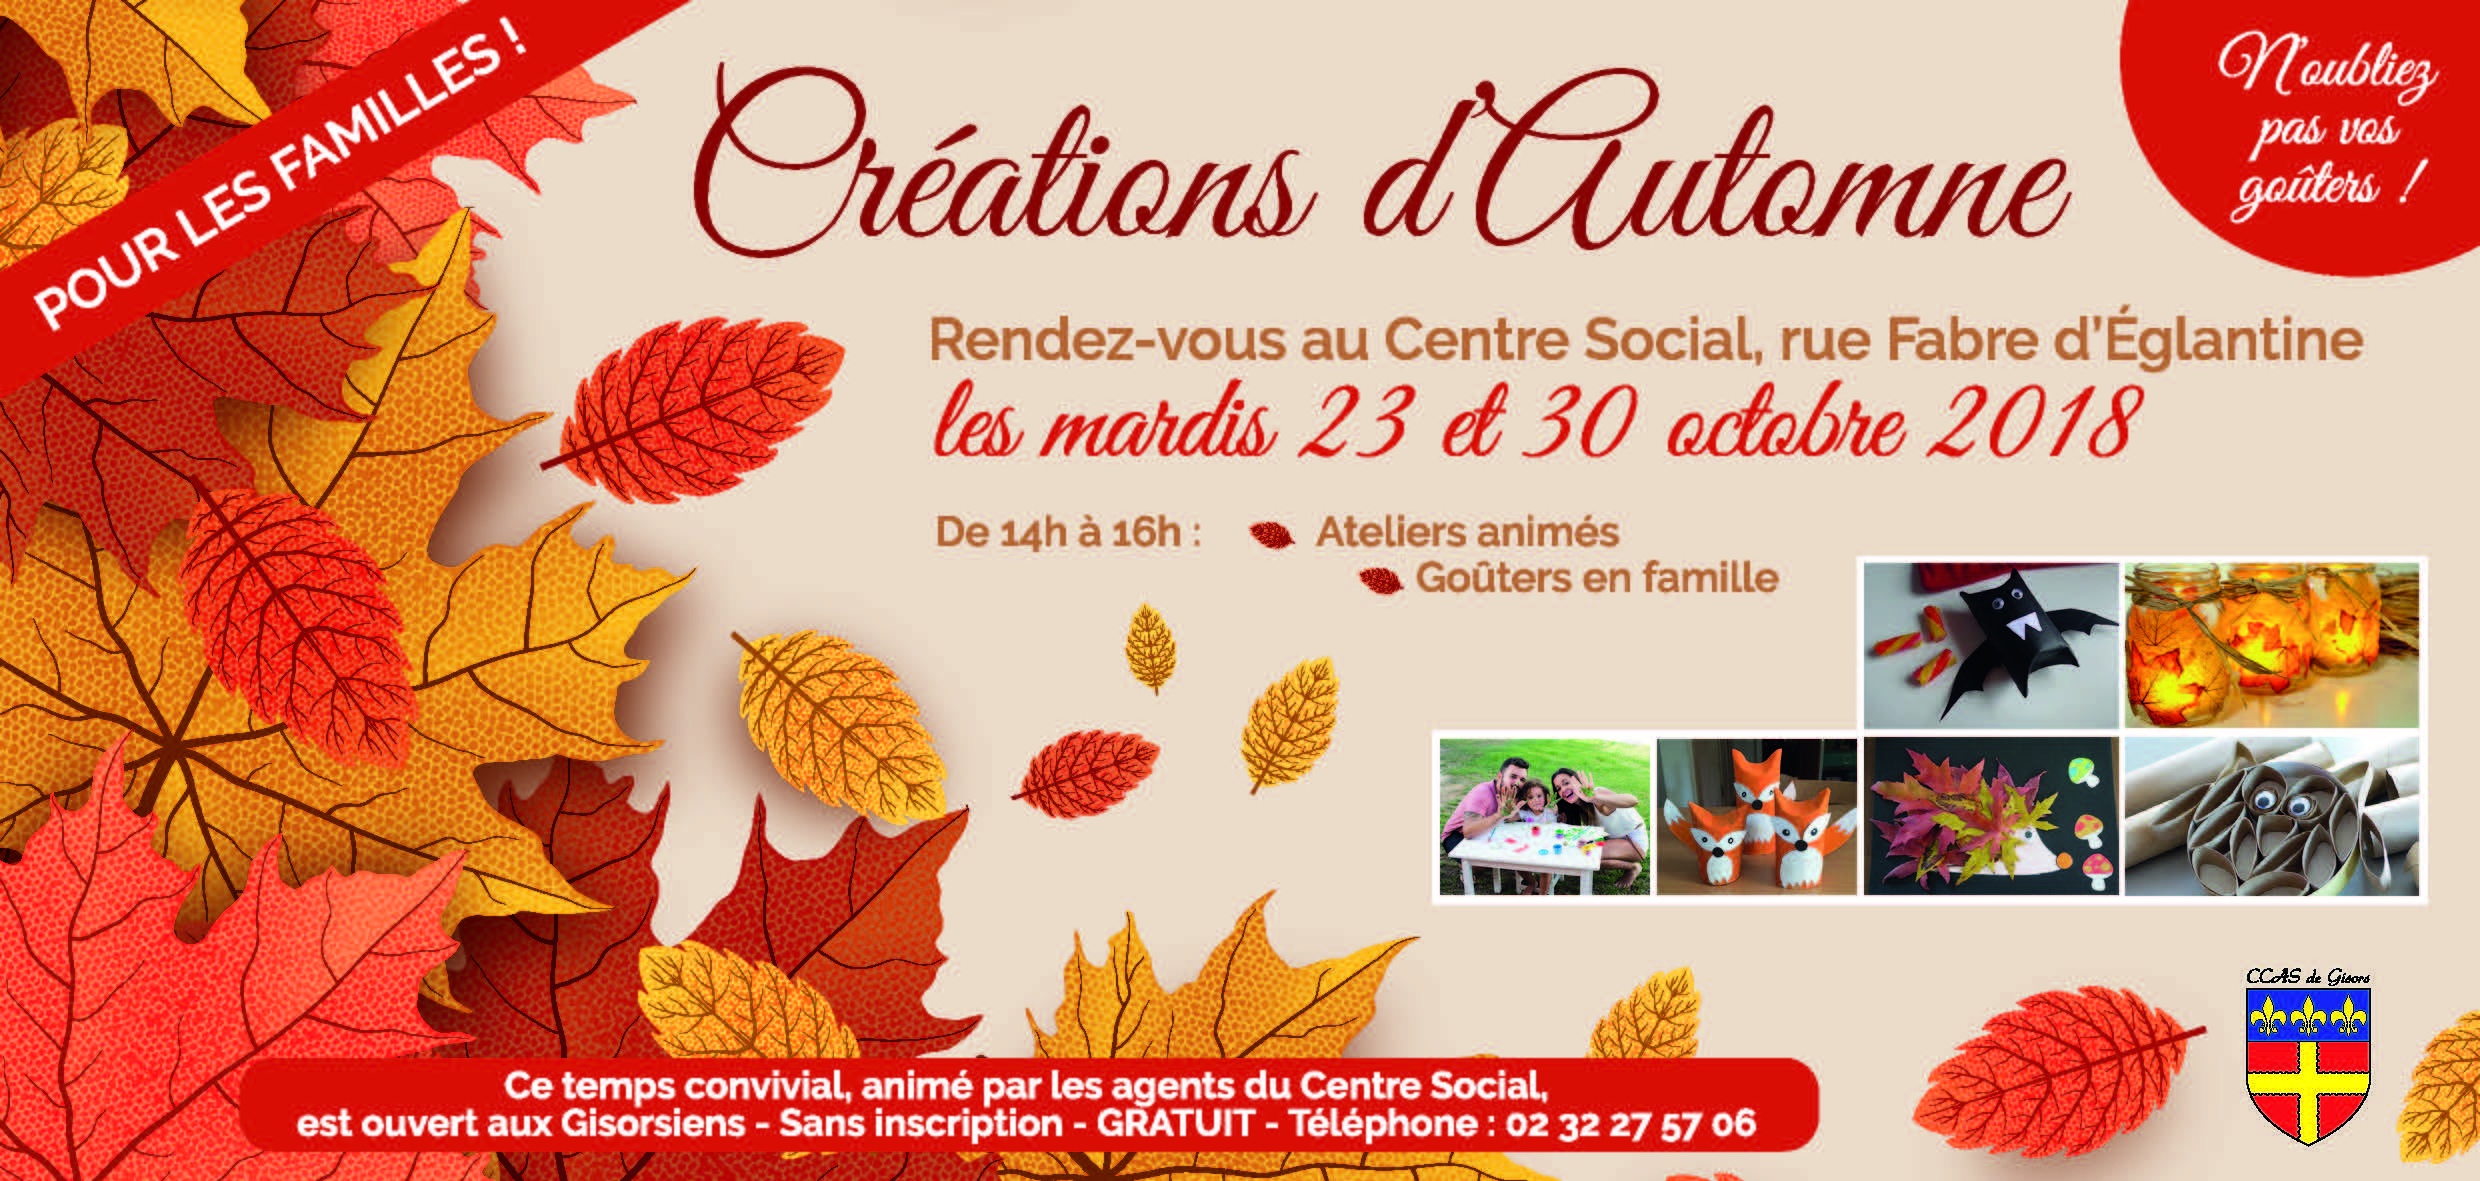 CREATION D'AUTOMNE